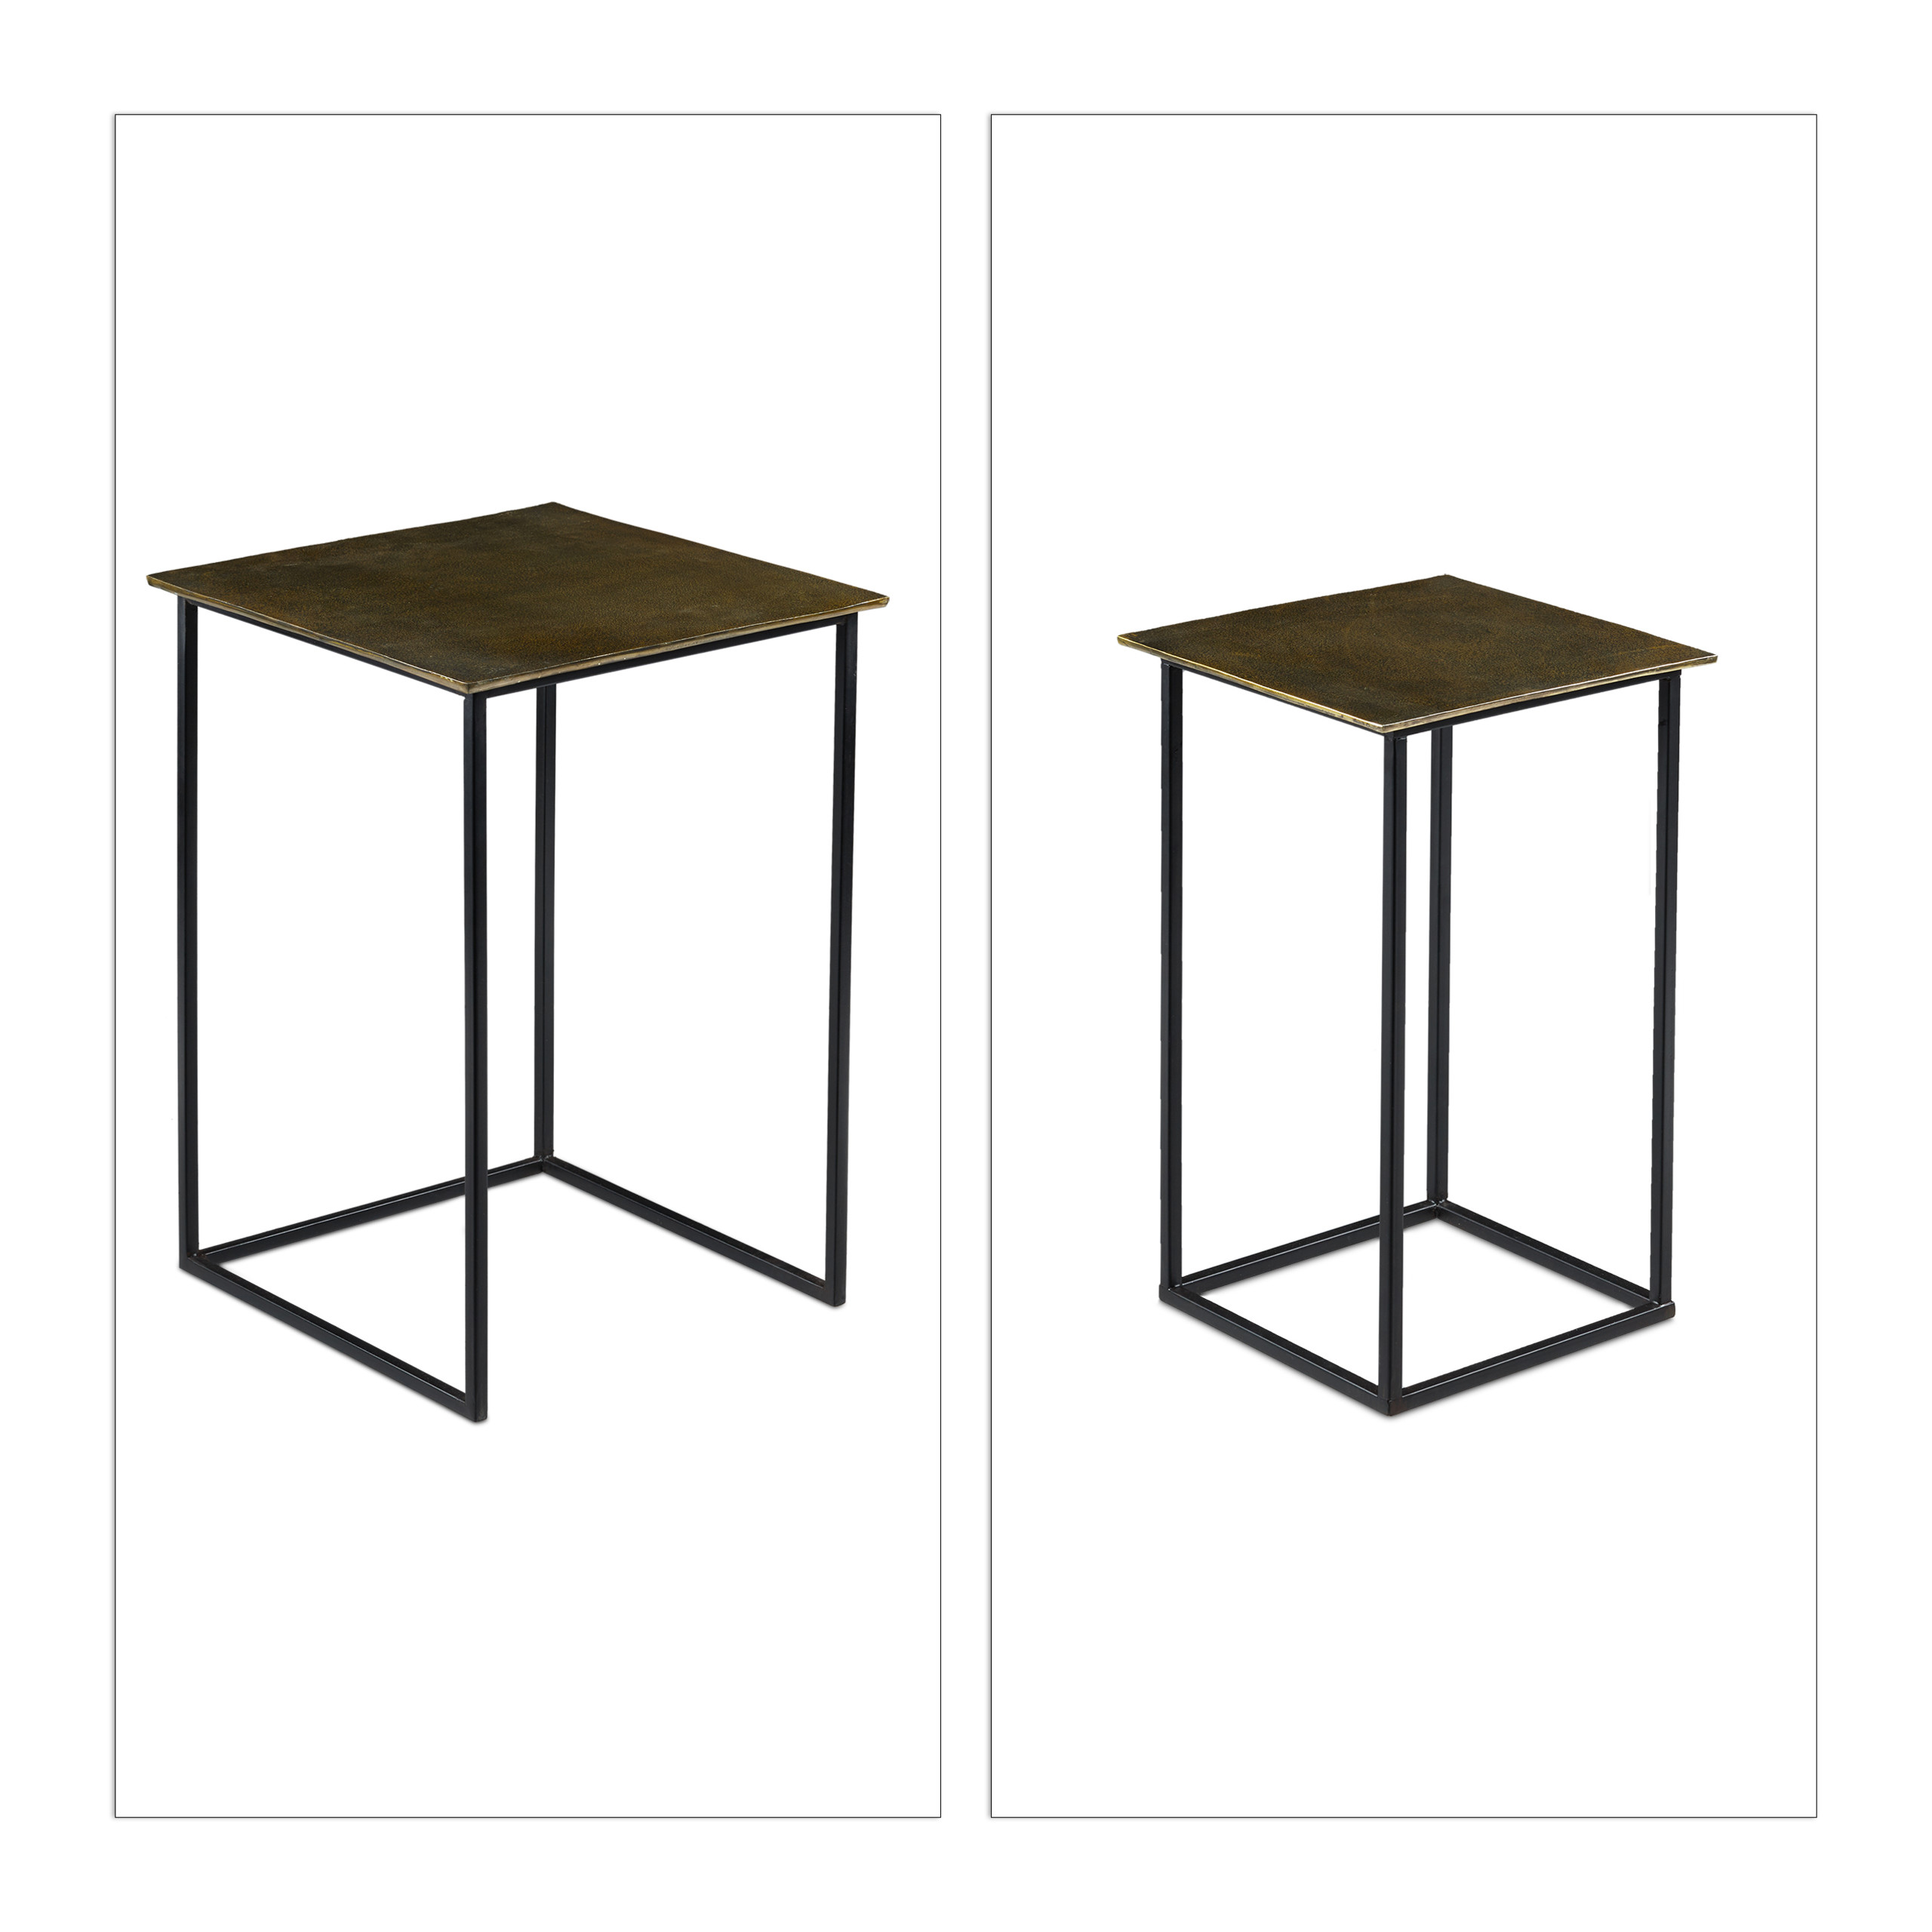 Nesting-Table-Set-of-2-Decorative-Side-Table-Retro-Vanity-Stand-Coffee-Table thumbnail 6